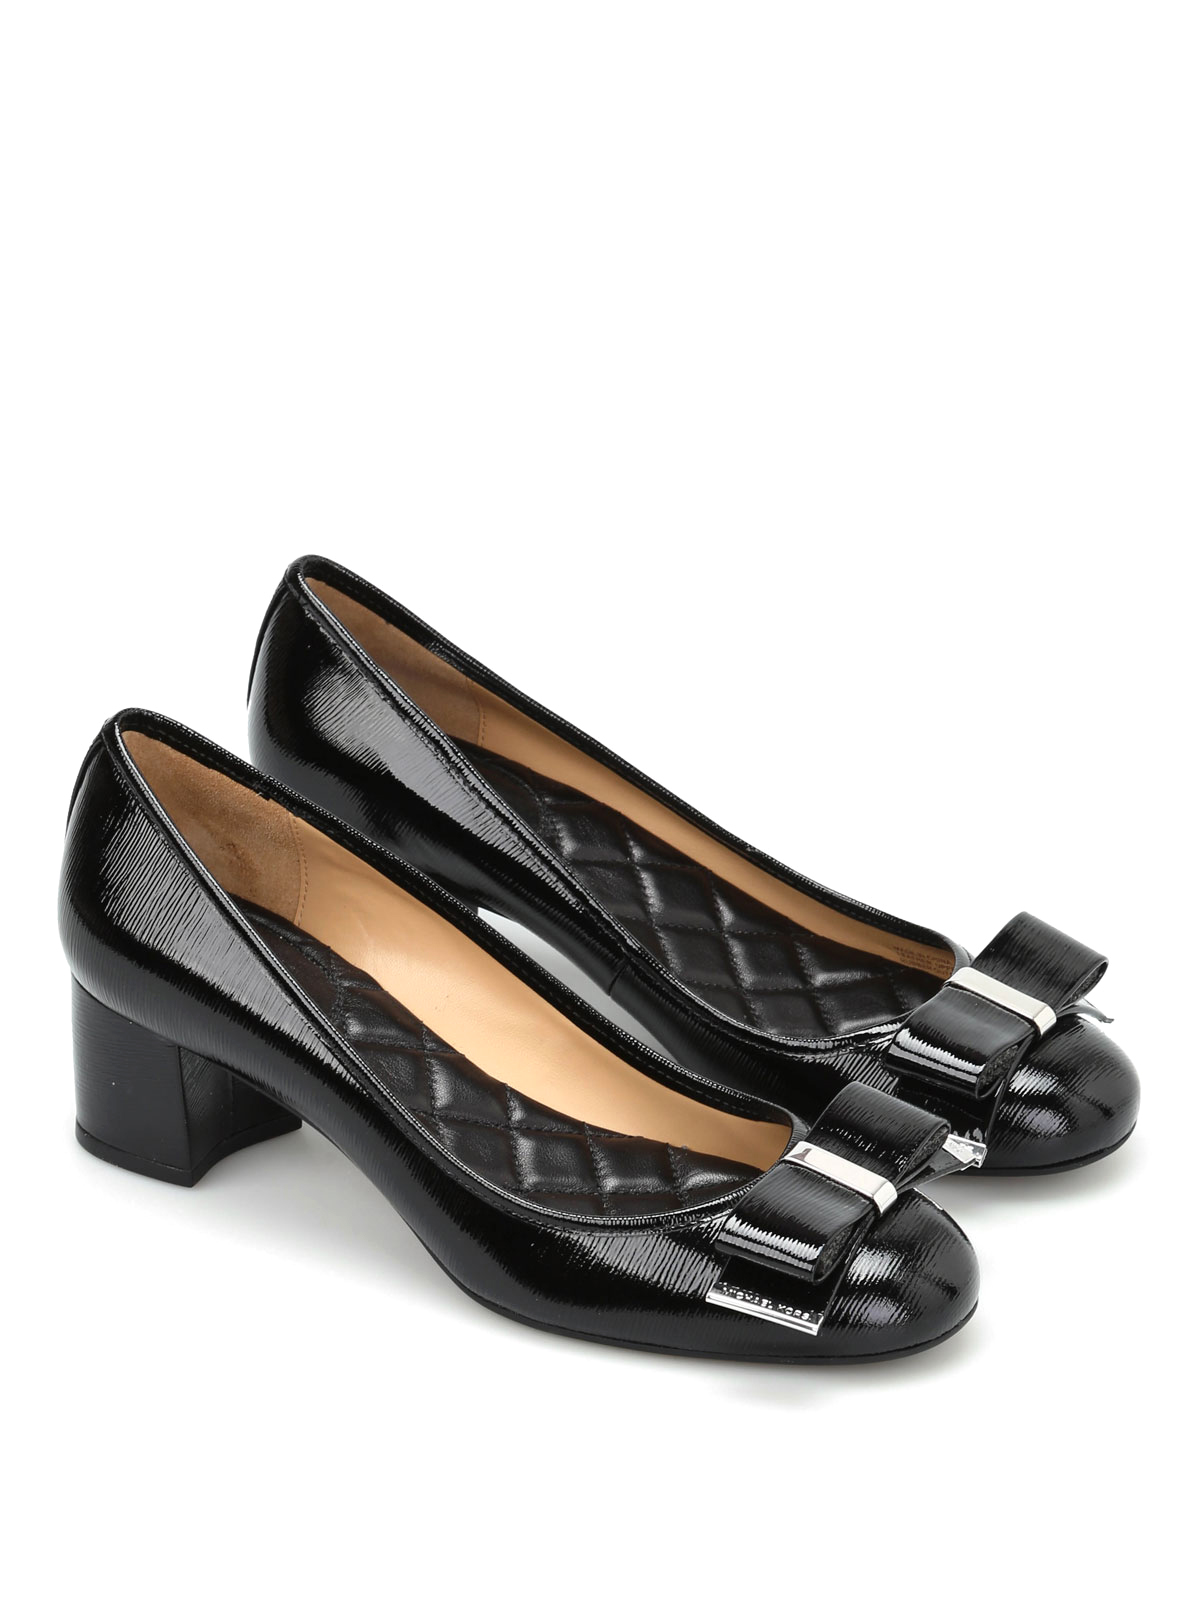 23e4f78c43b MICHAEL KORS  court shoes online - Kiera Flex patent leather mid pumps